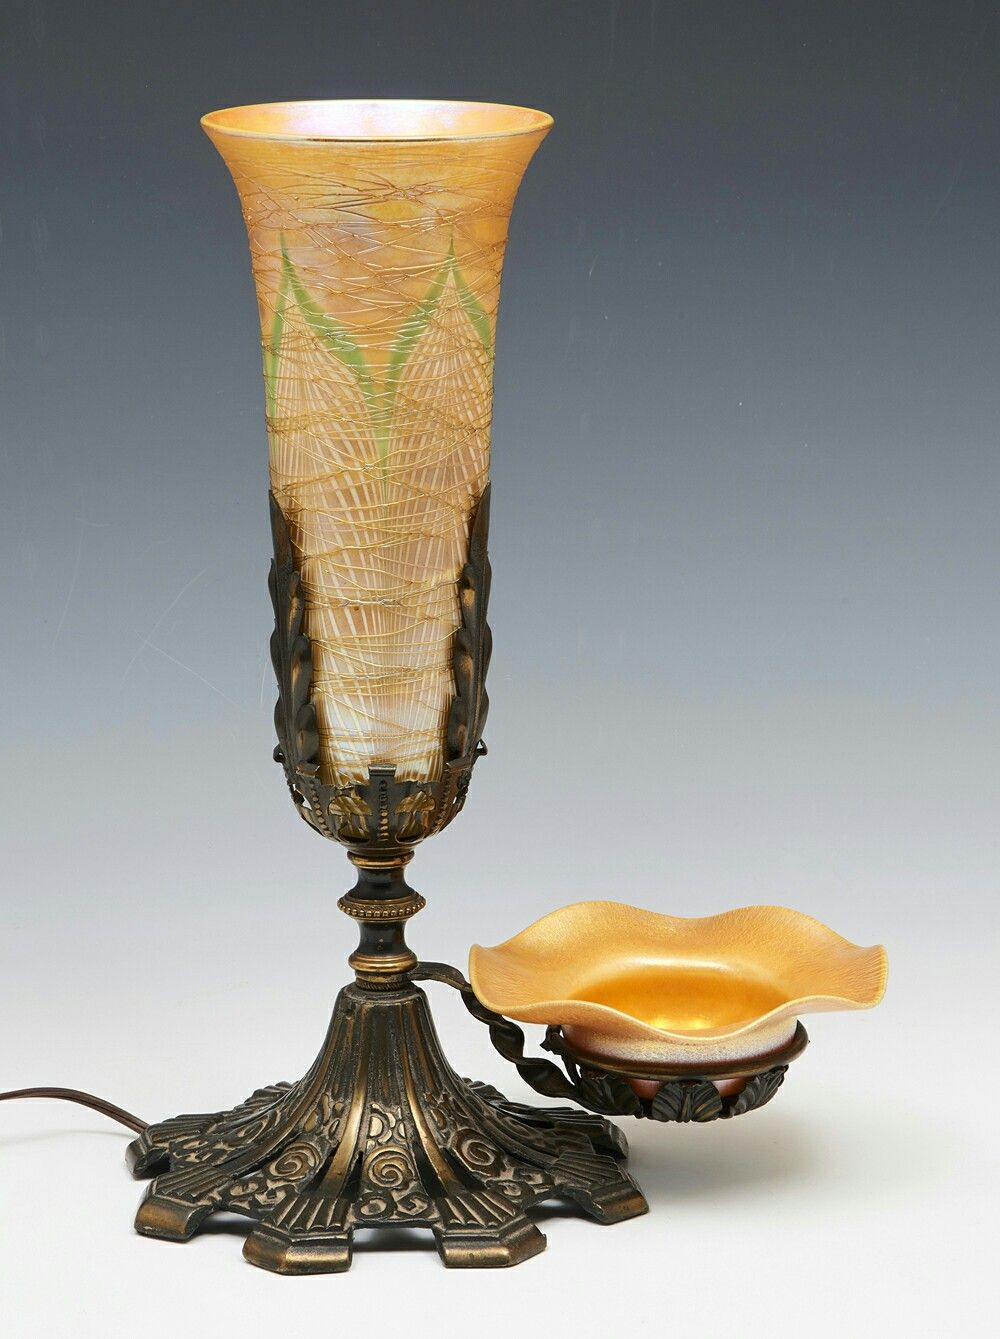 Glass Lamp Bowl Durand Art Glass Lamp With Bowl Pulled Feather Design With